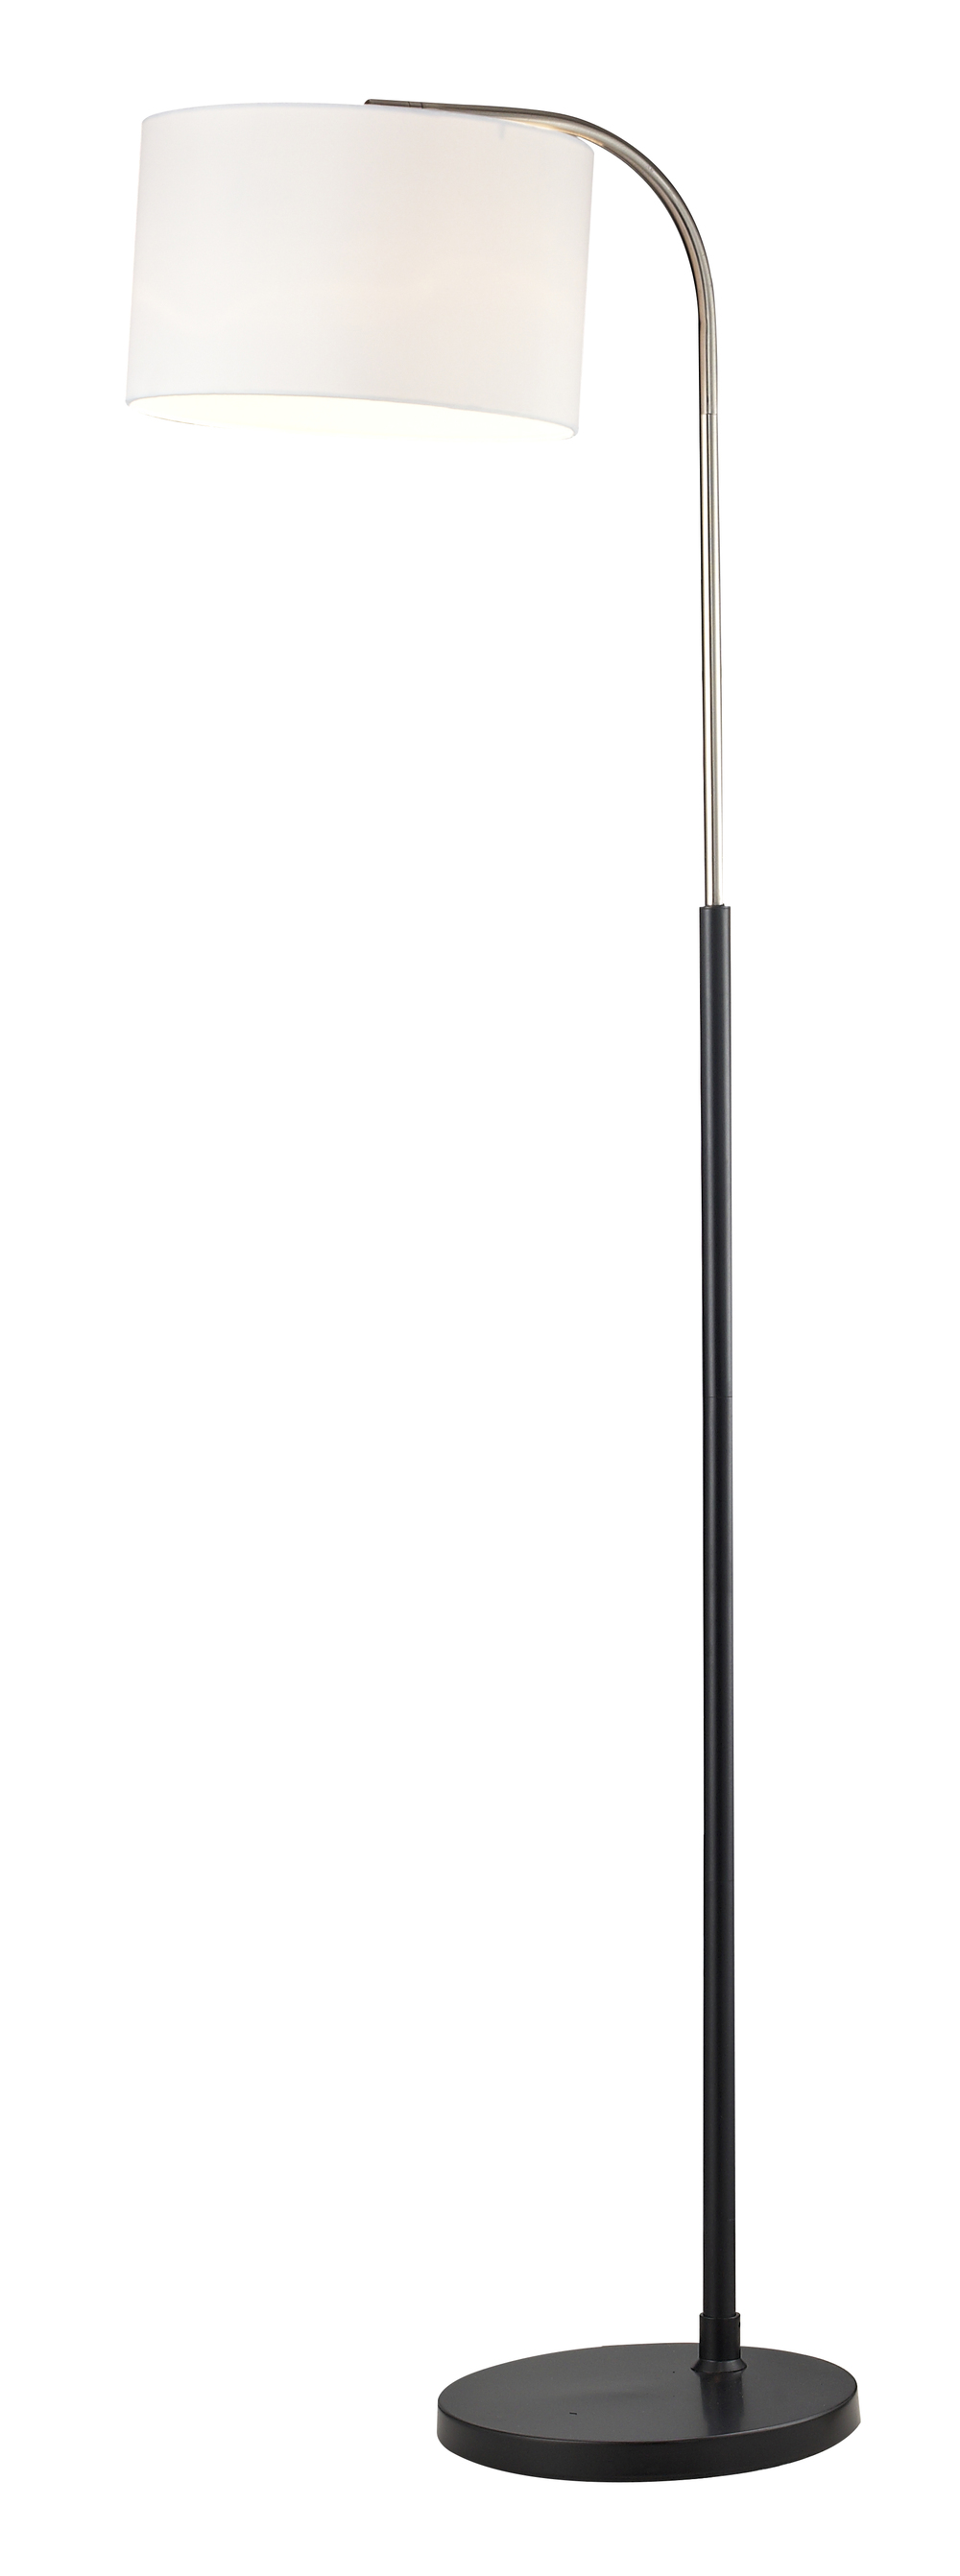 20007 | BINDY FLOOR LAMP